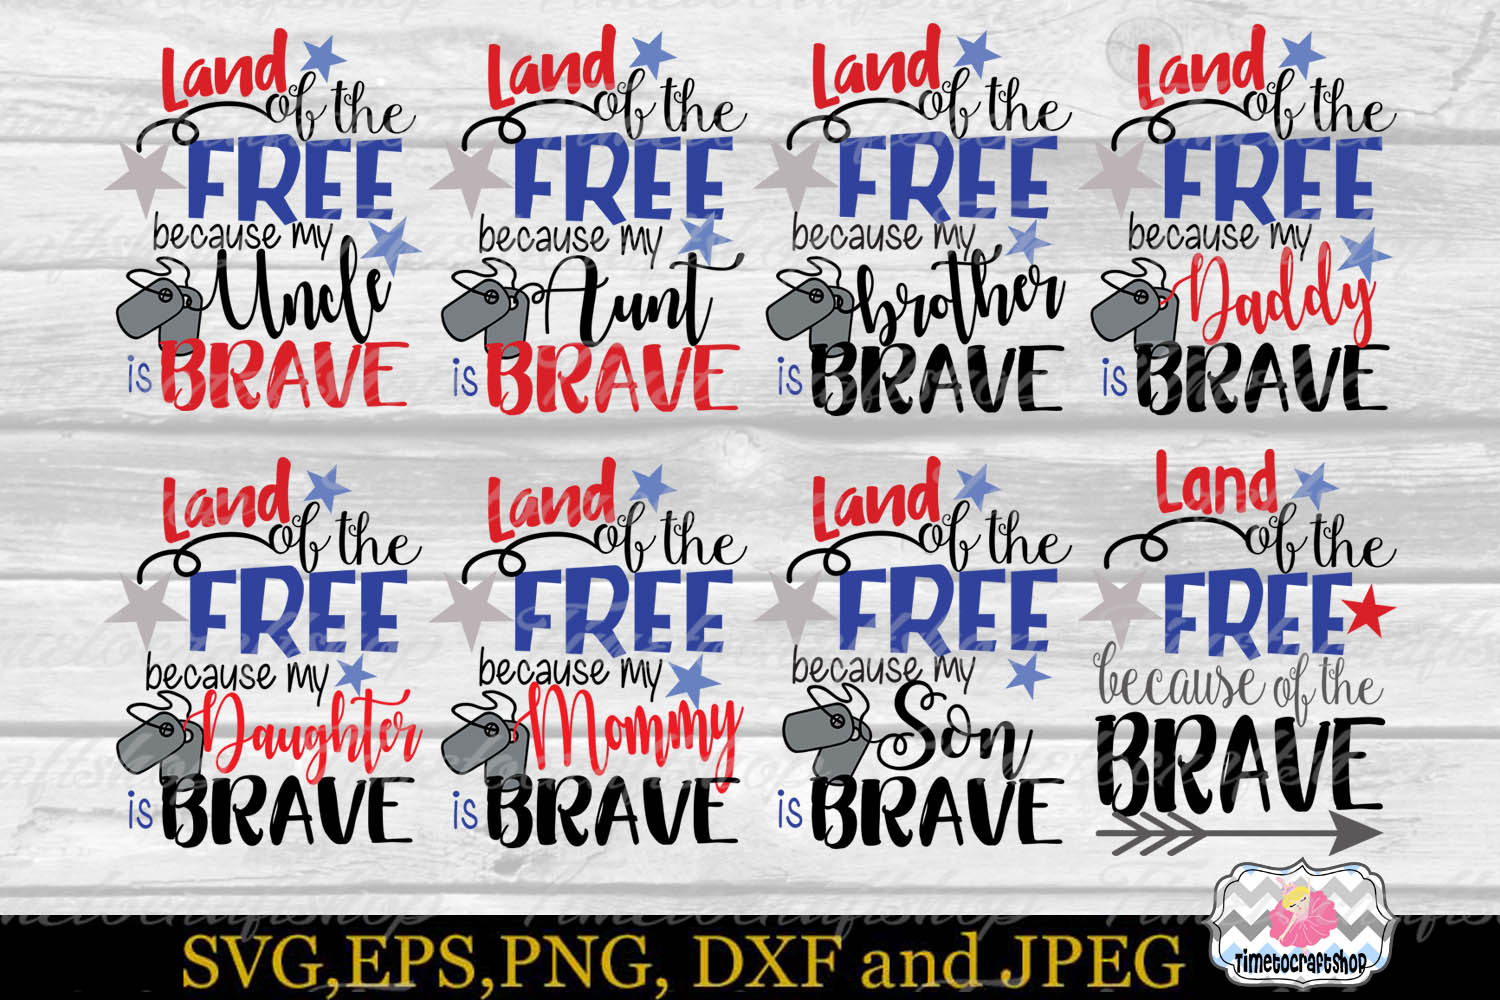 SVG, Dxf, Png Land of the Free Because of the Brave Bundle example image 1